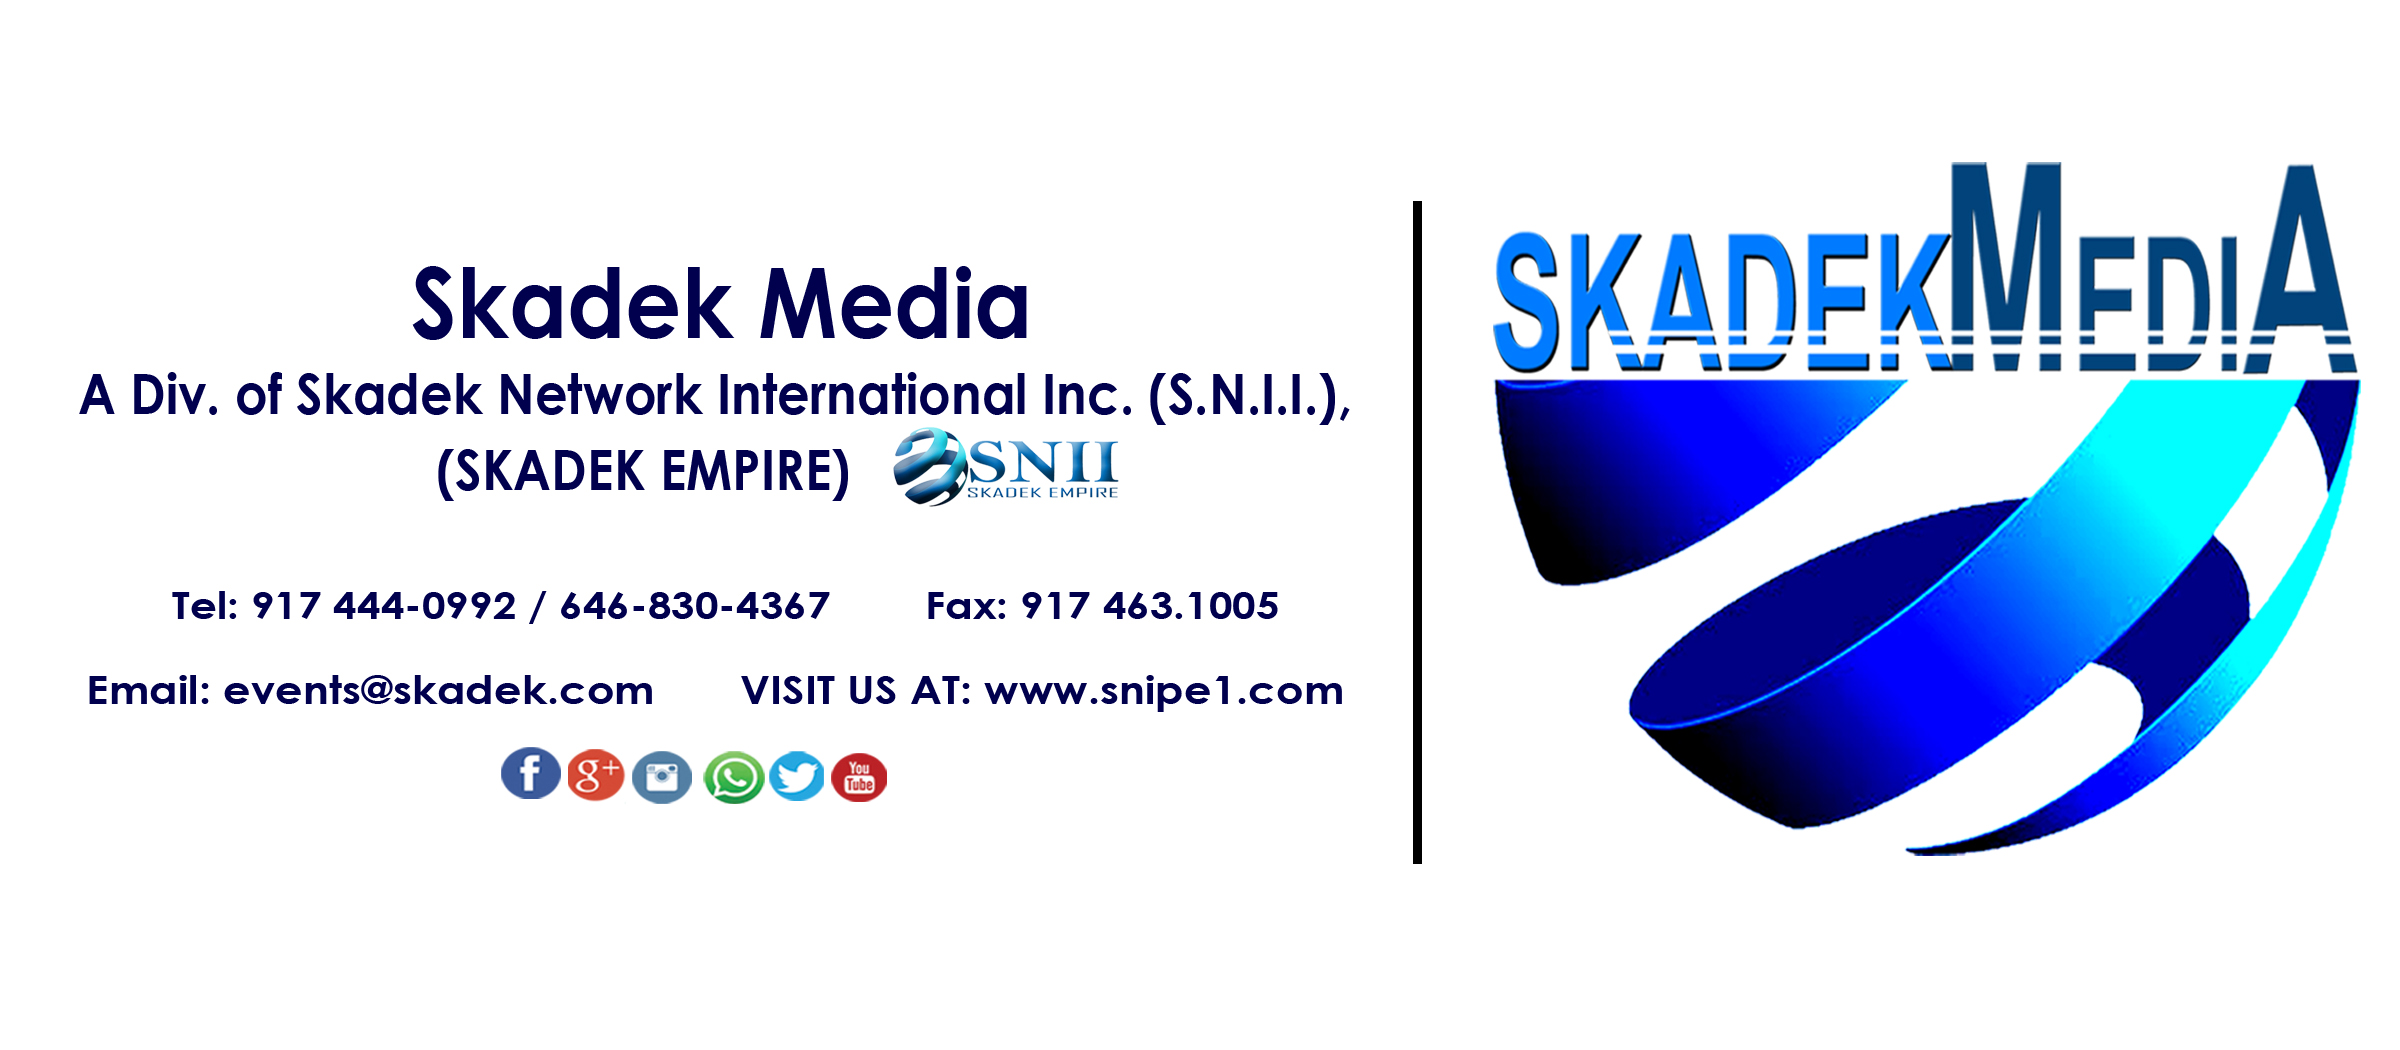 SKADEK MEDIA FB COVER